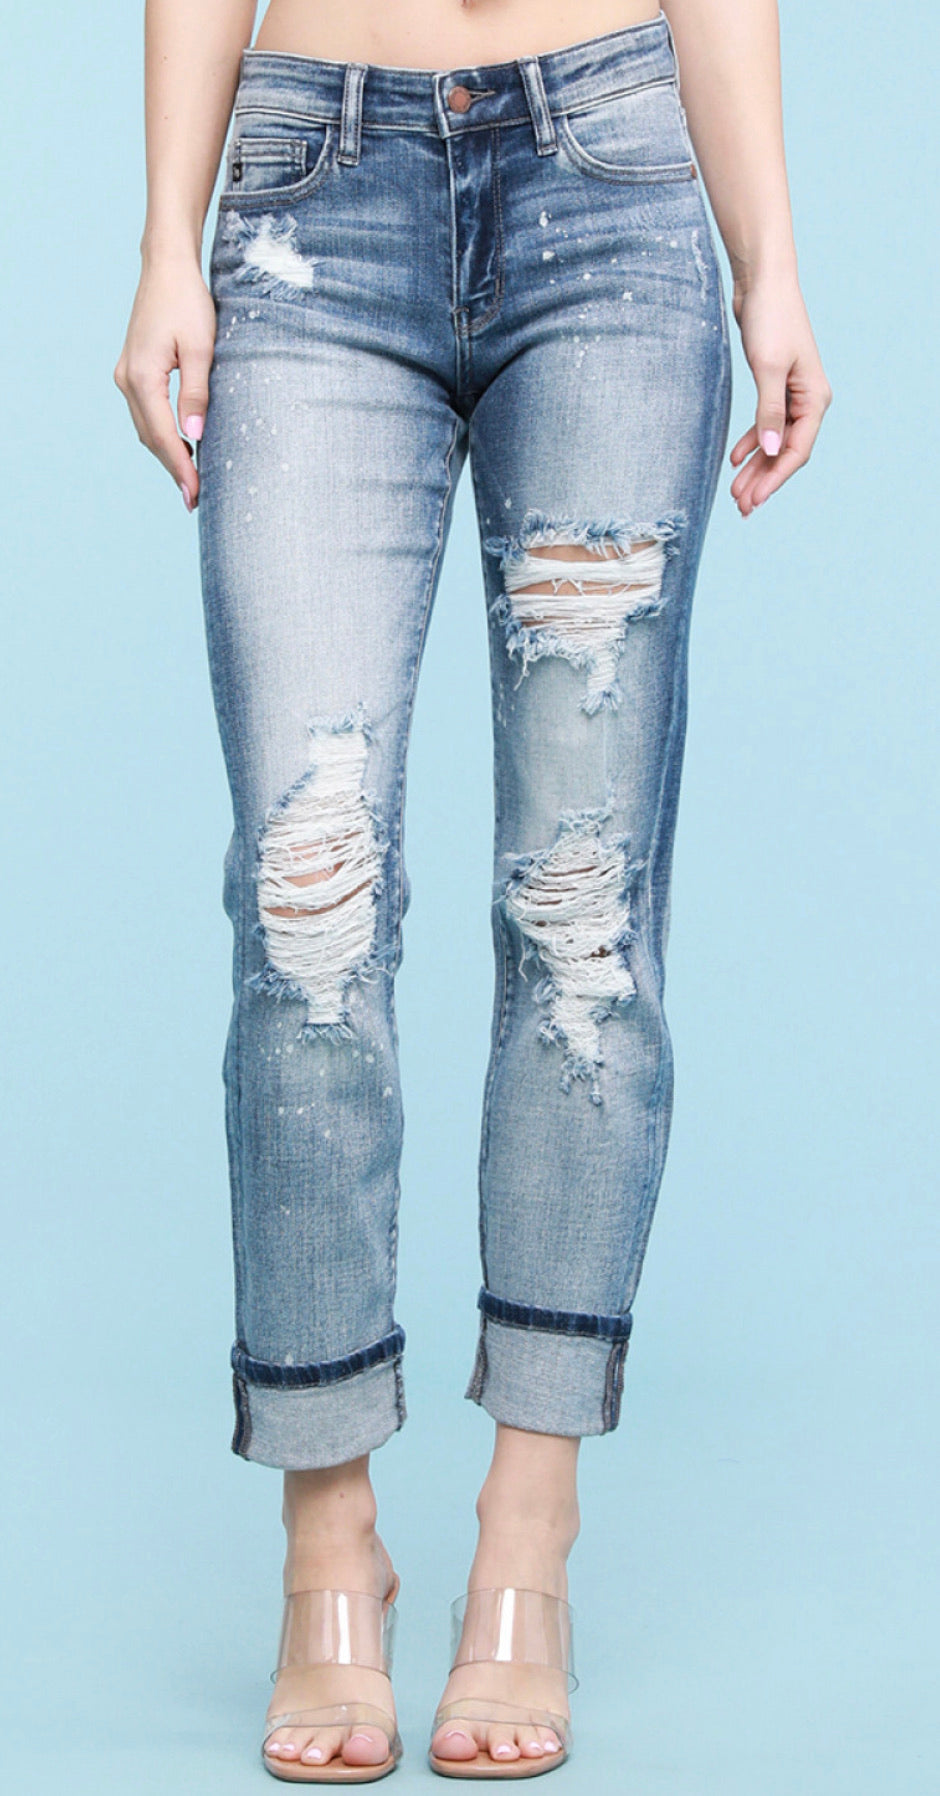 Judy Blue Calm In The Storm Bleach Splash Boyfriend Jeans